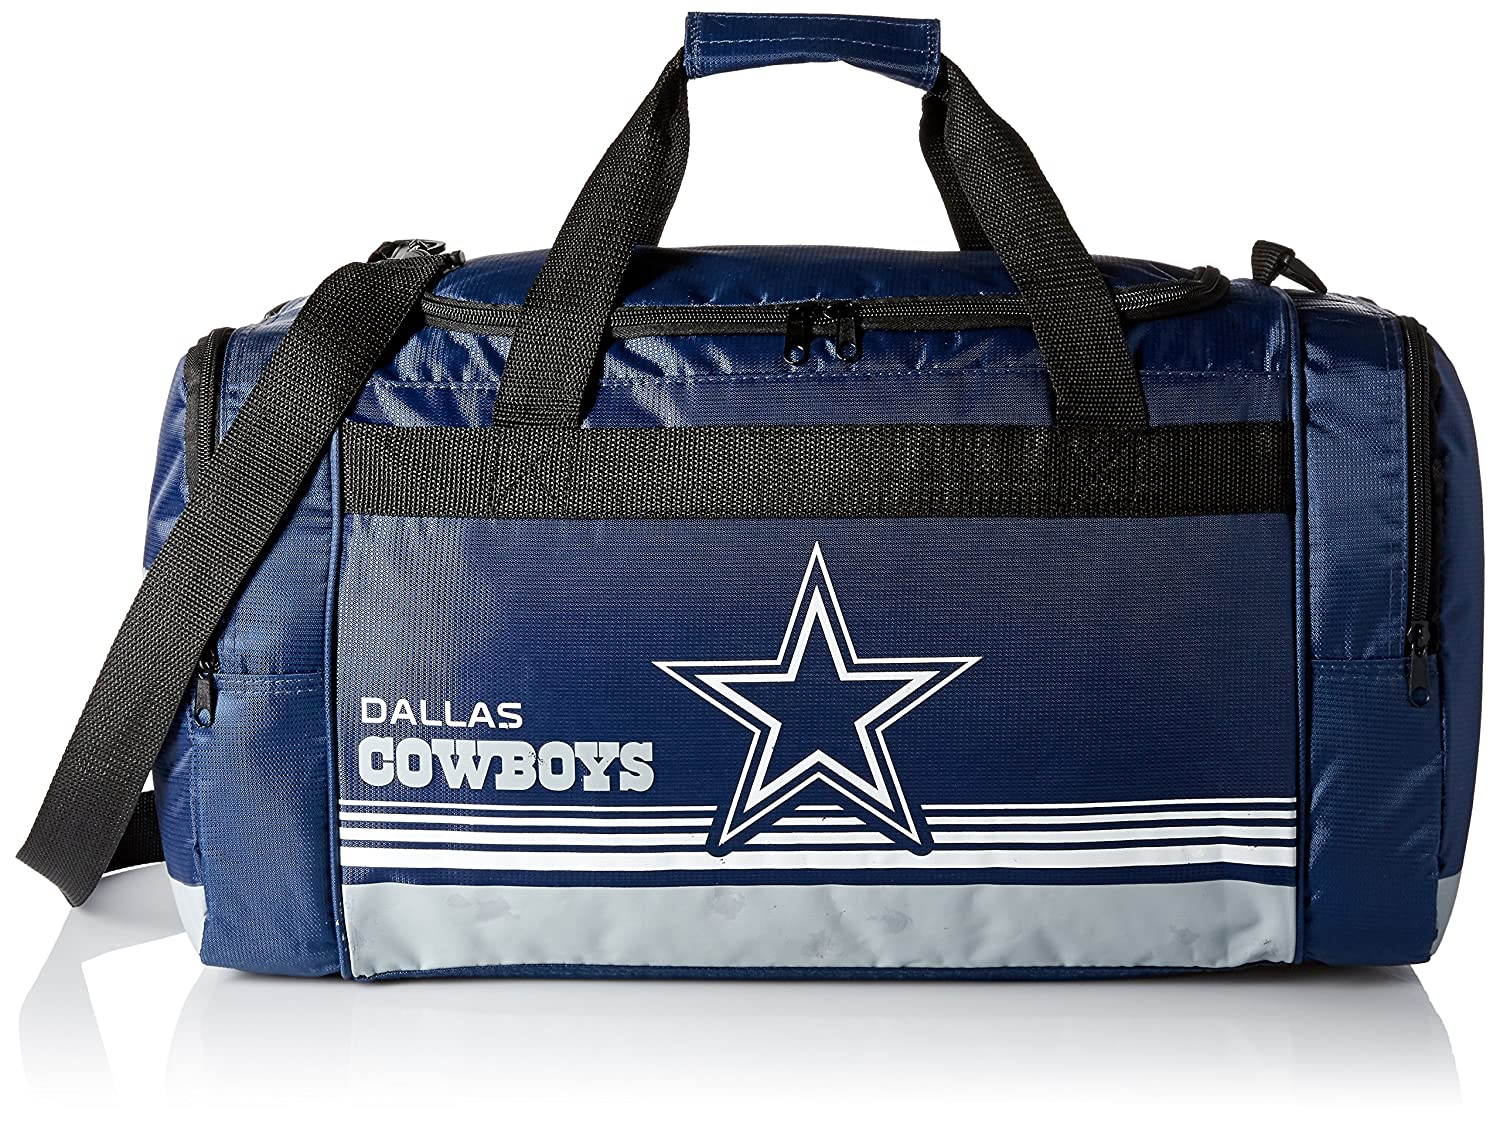 Dallas Cowboys Medium Striped Core Duffle Bag